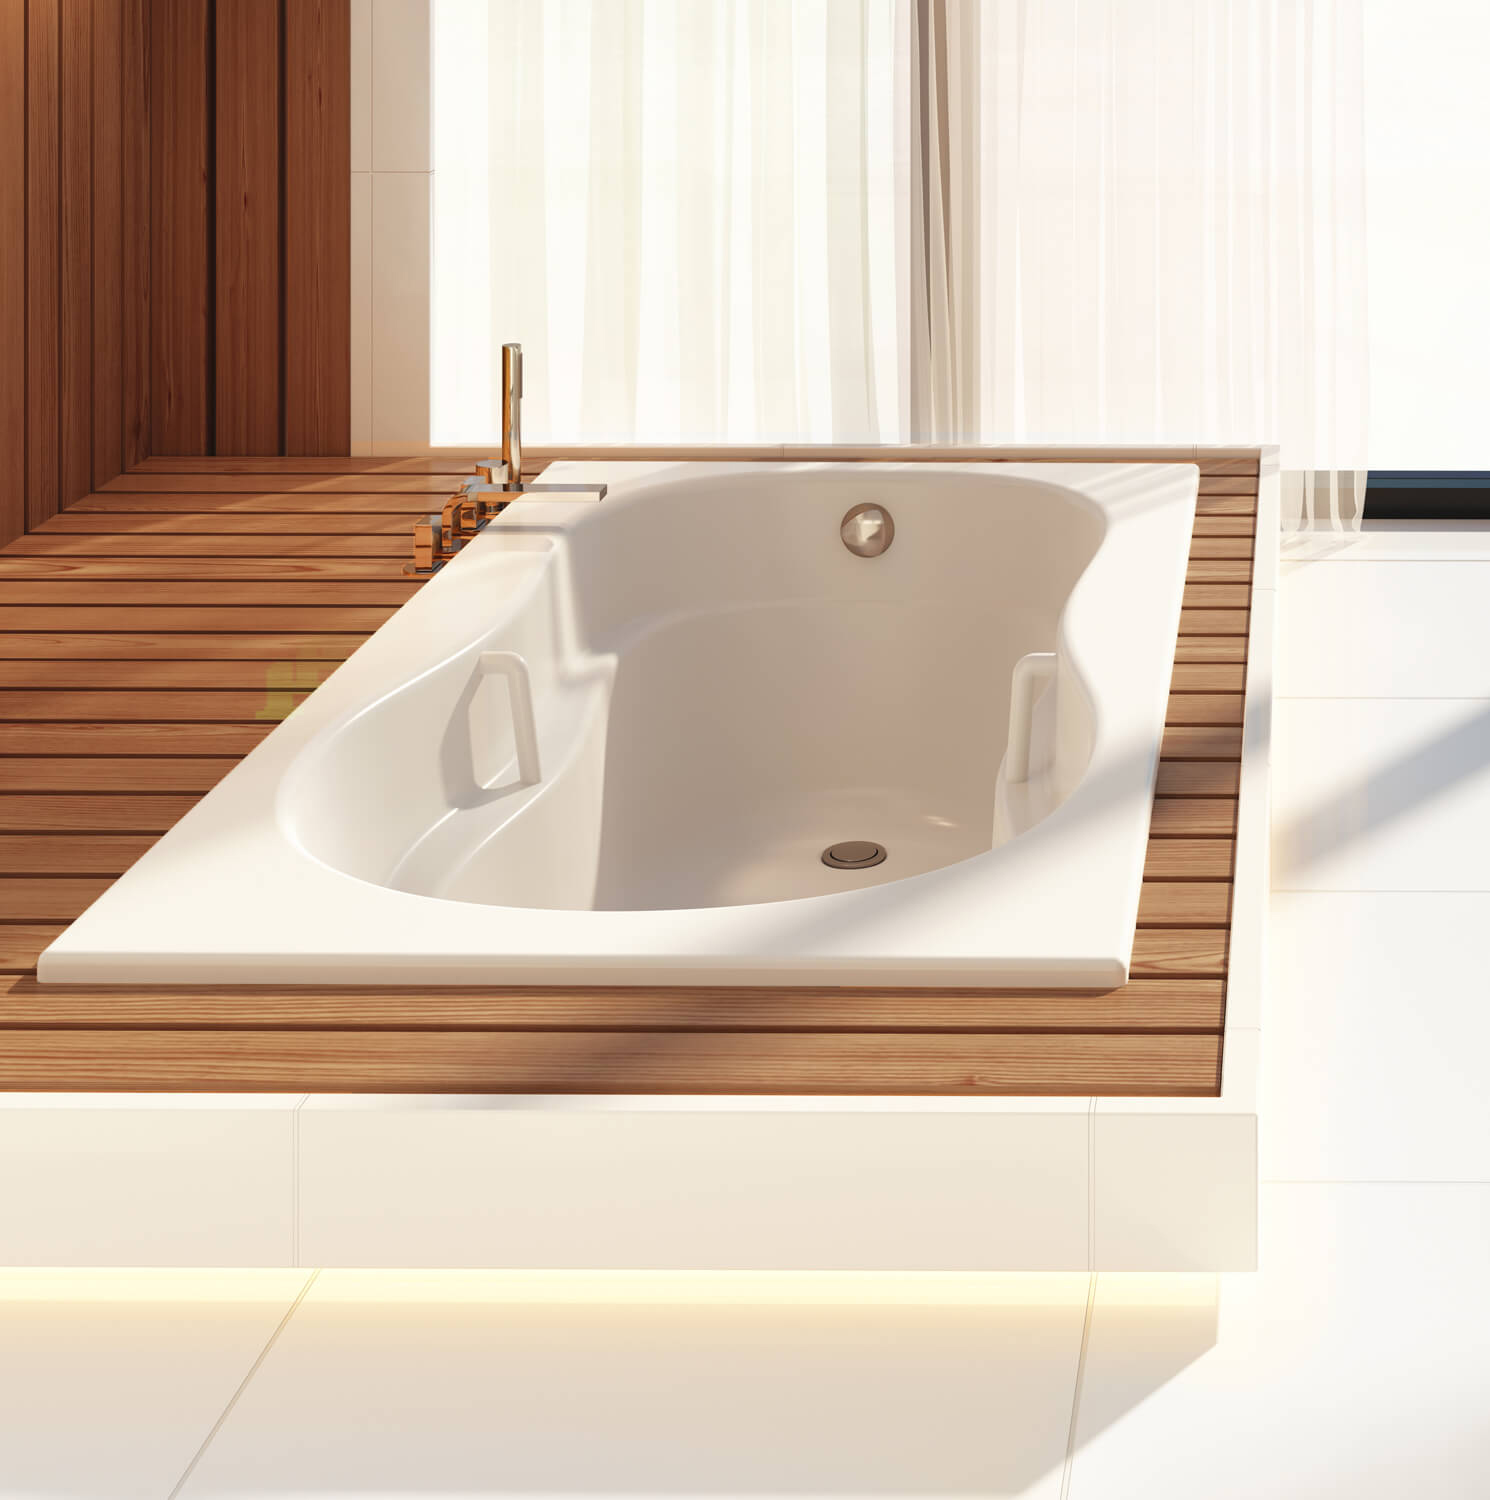 Bainultra Azur 60 collection alcove drop-in air jet bathtub for your master bathroom